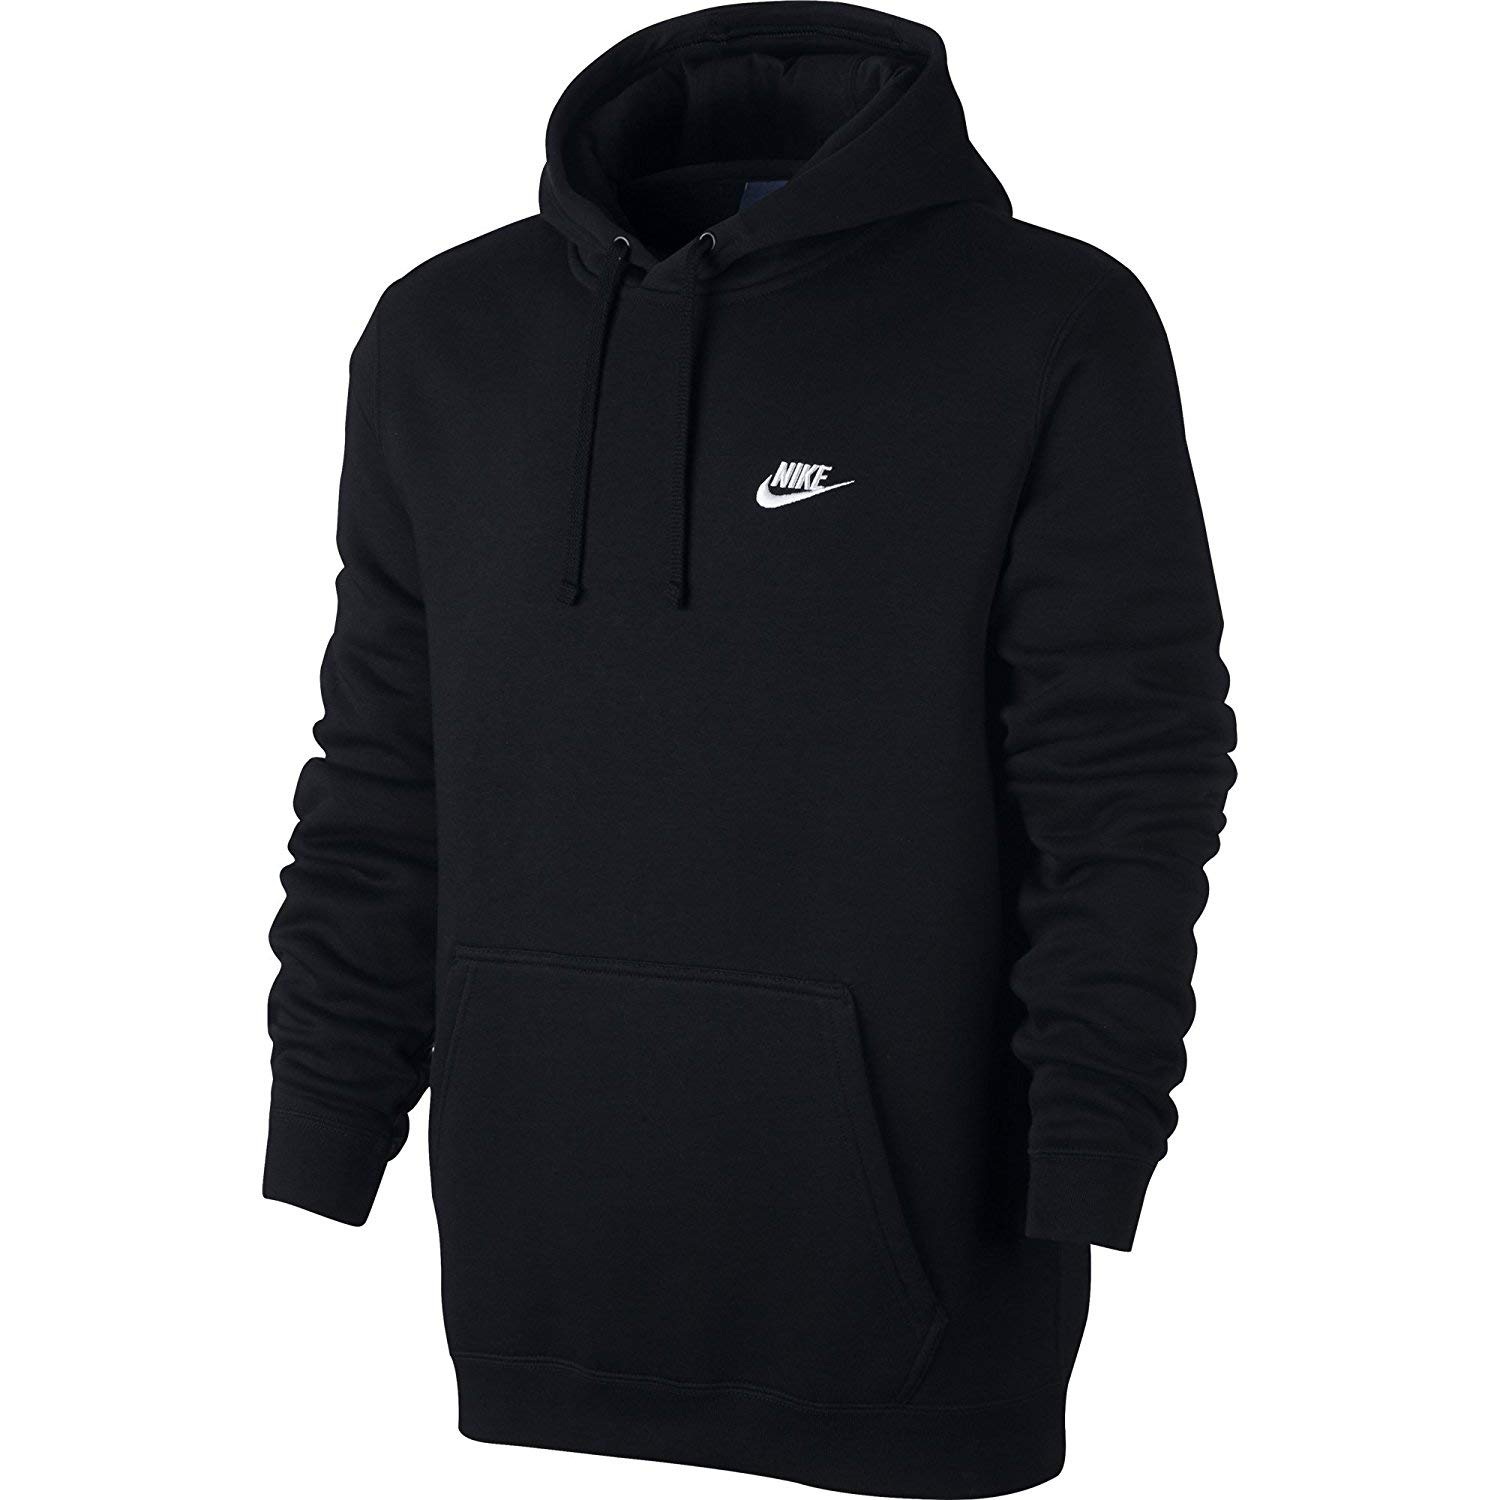 624cb663aa55e The NIKE Sportswear Men\'s Pullover Club Hoodie bundles you up in plush  comfort without the bulk. Crafted with soft fleece fabric, it features an  updated, ...